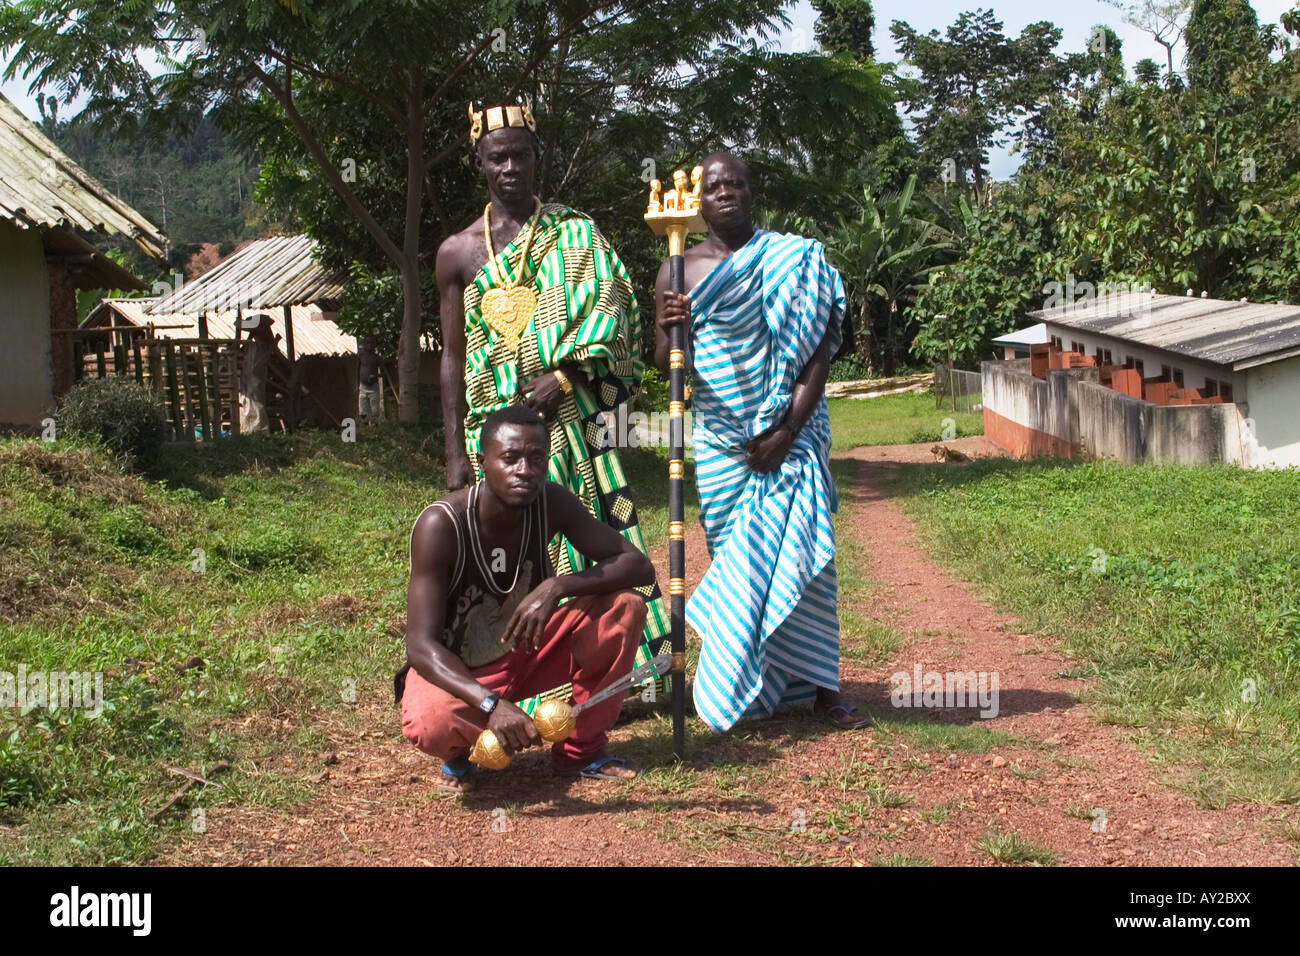 African chief in Kente cloth in his village with his linguist holding golden staff of office and his sword bearer, - Stock Image